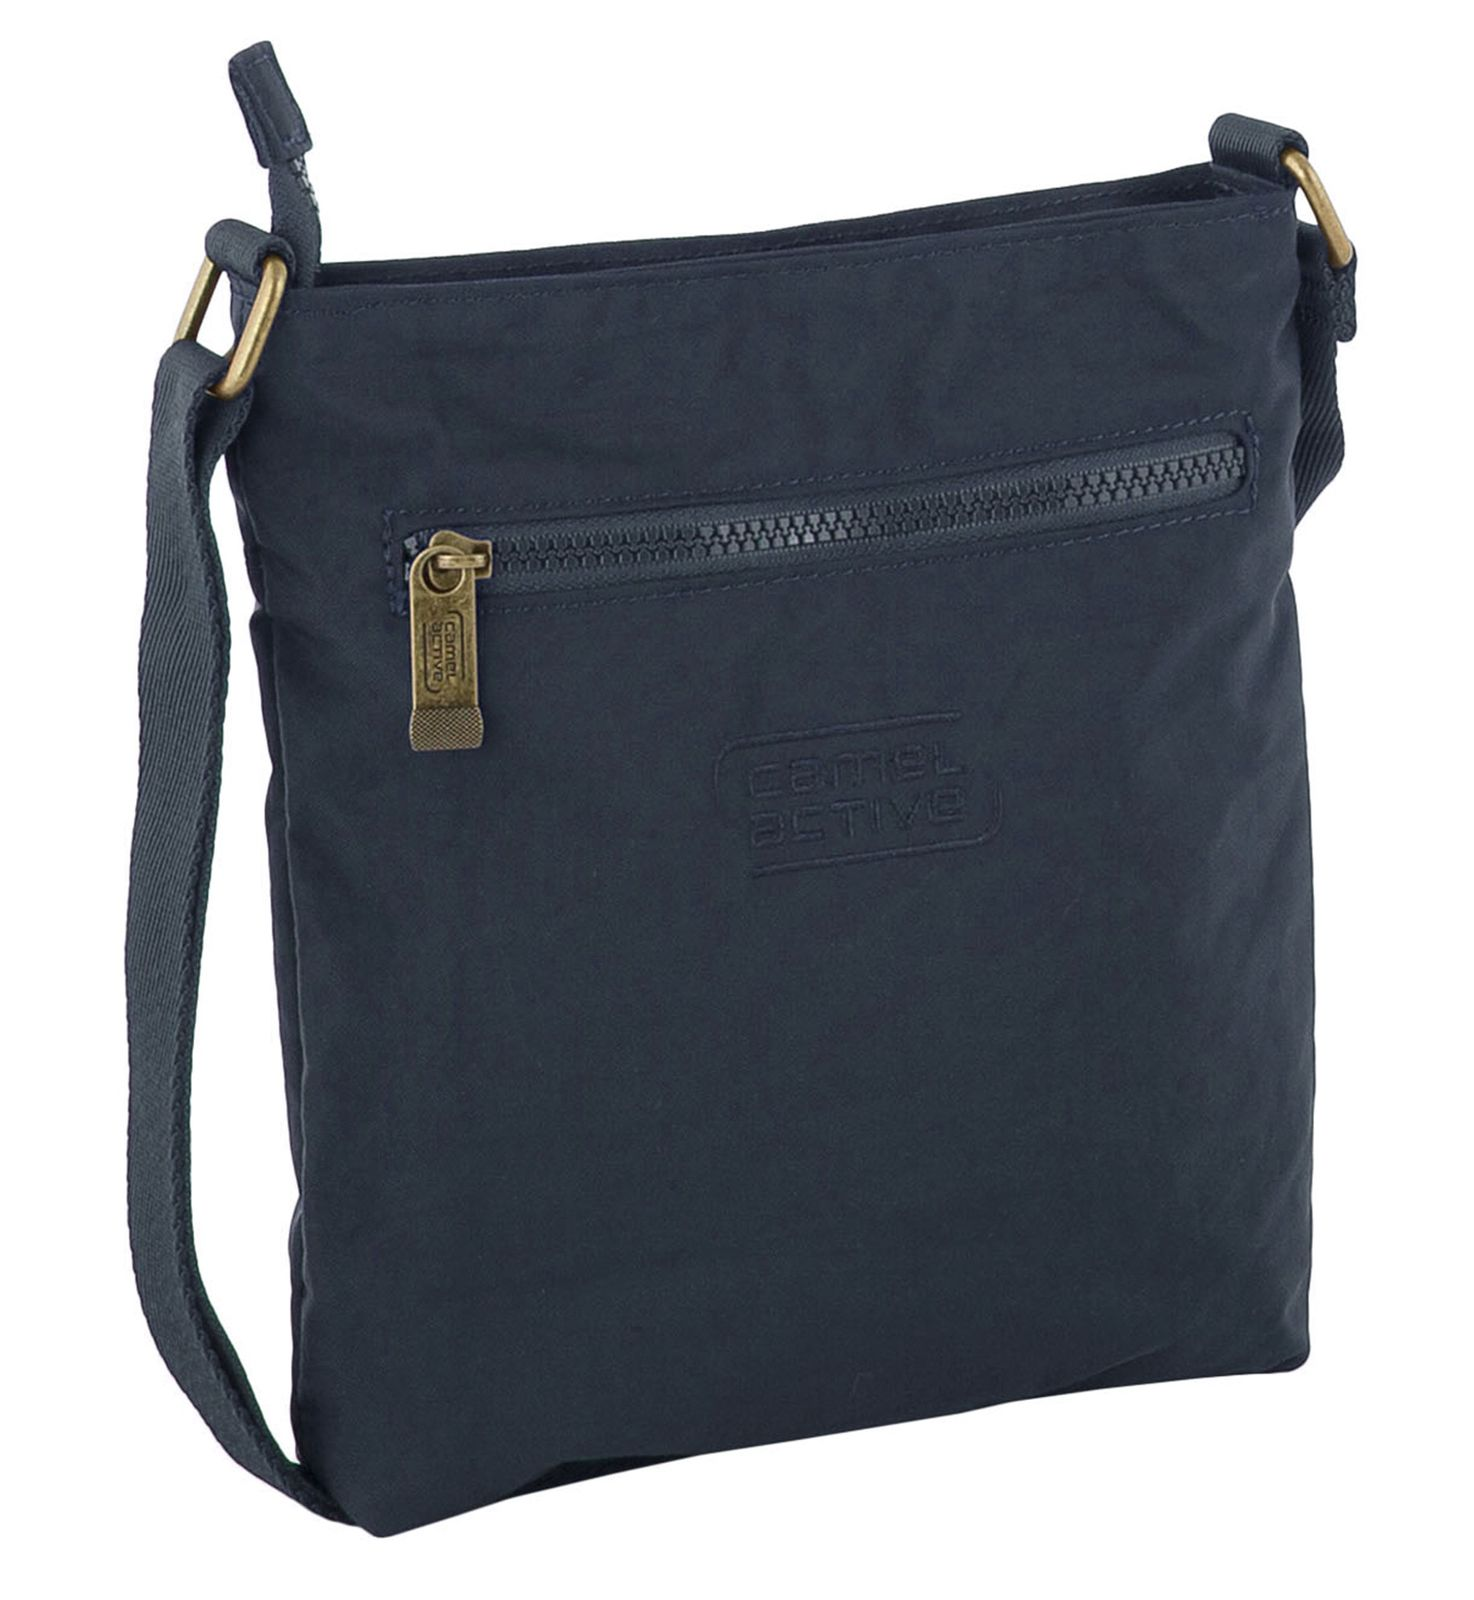 camel active Journey Shoulder Bag Umhängetasche Tasche Dark Blue Blau